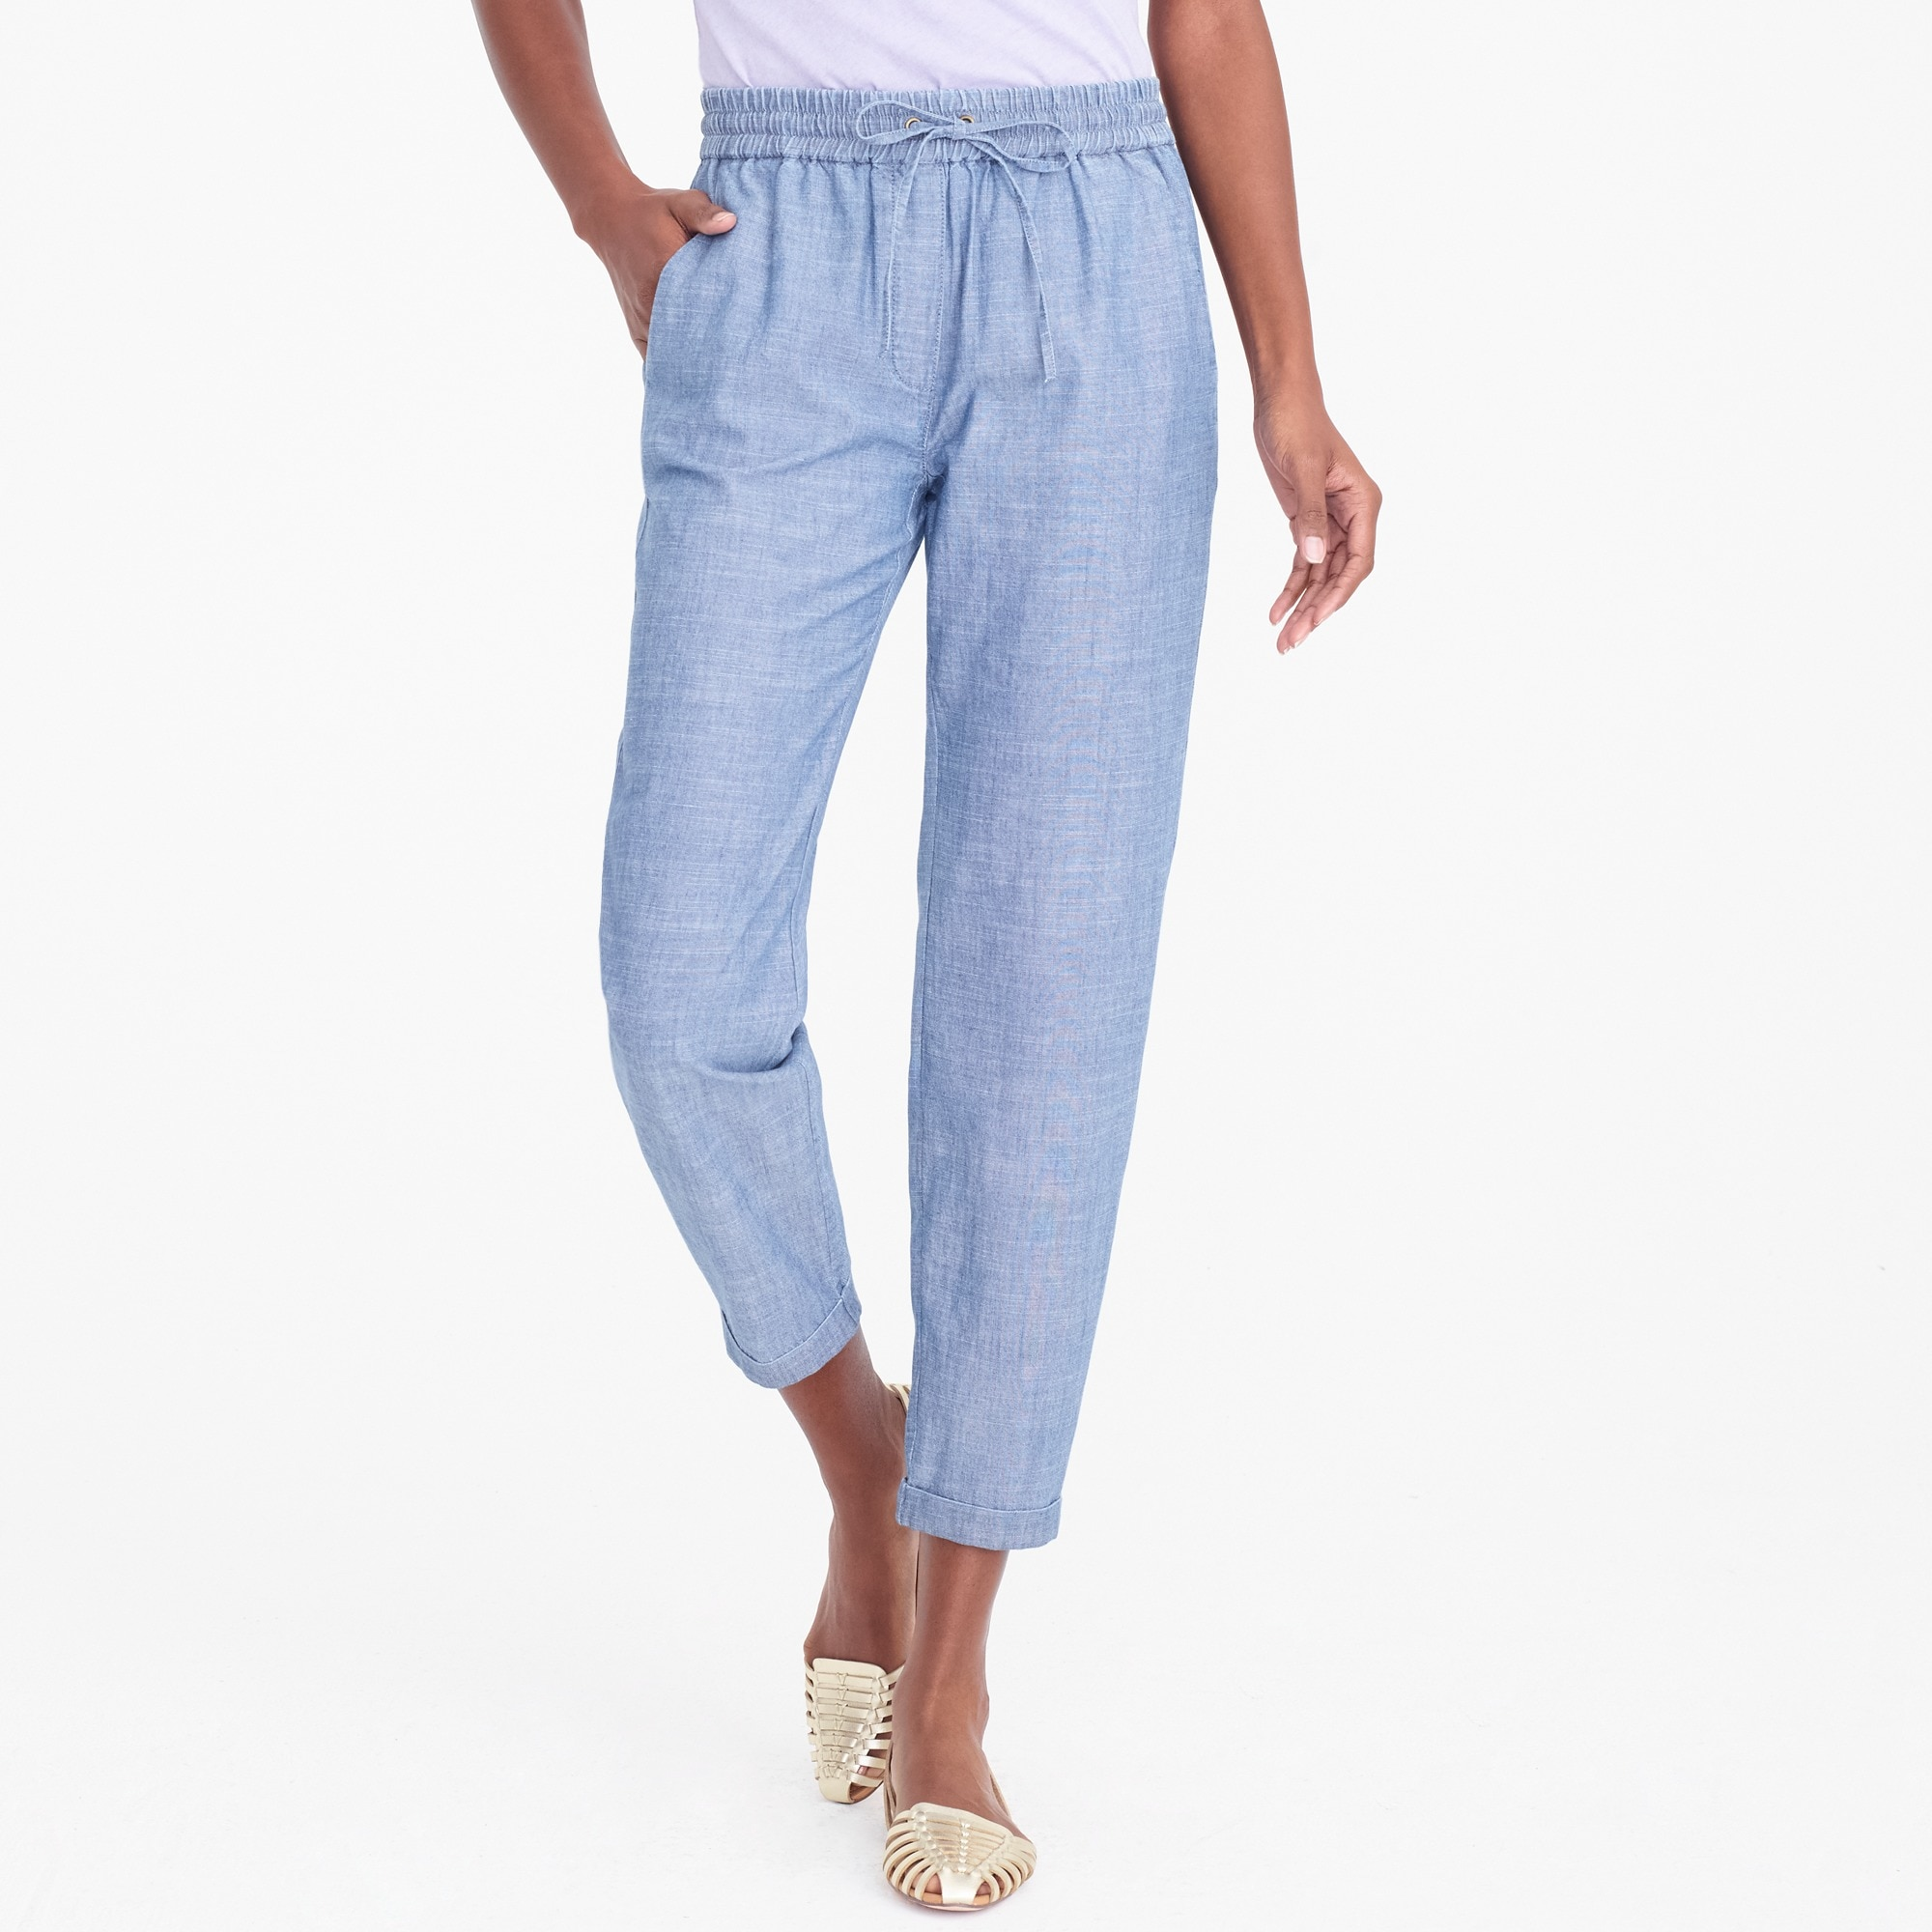 petite chambray drawstring pant : factorywomen pants